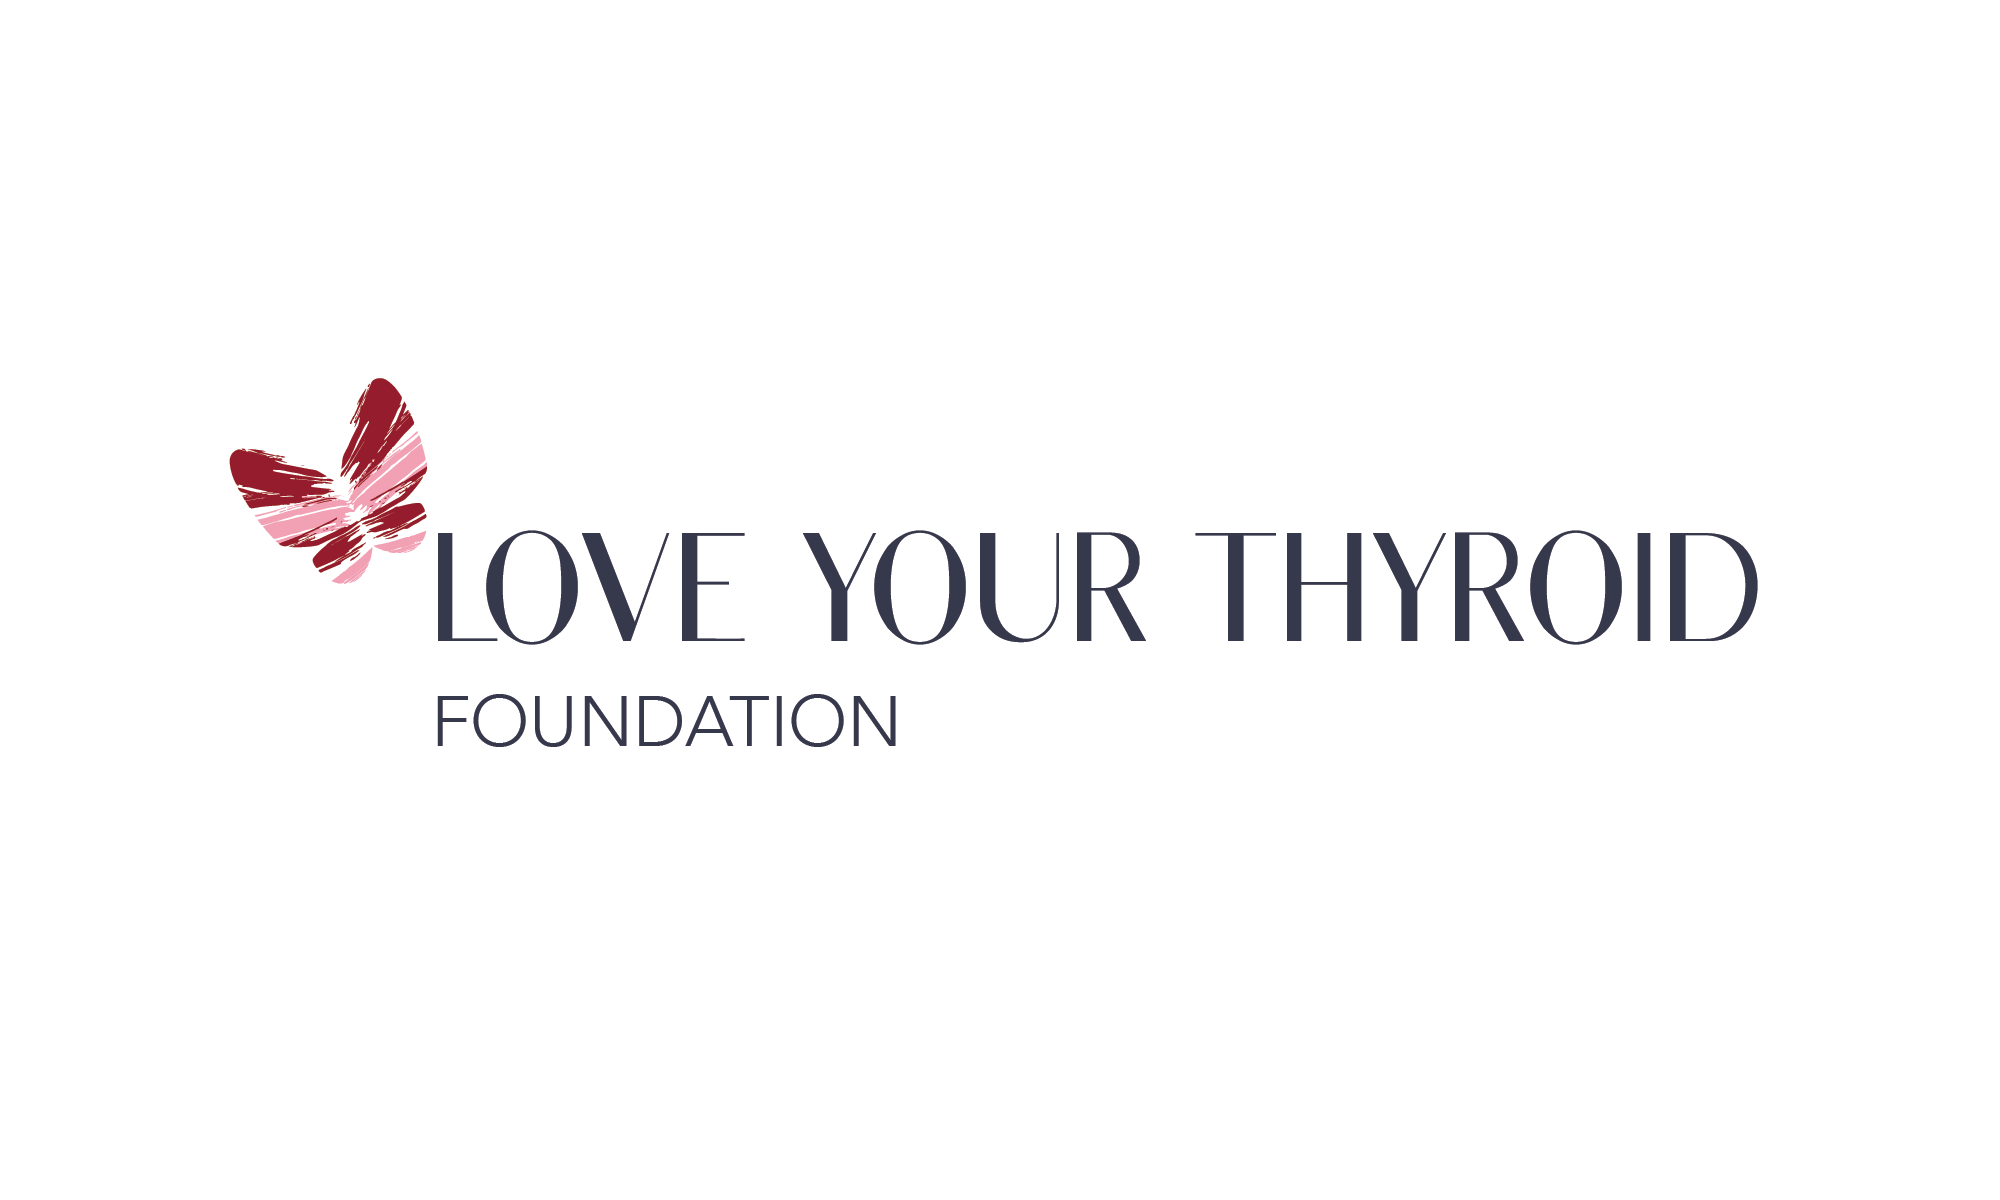 Love Your Thyroid Foundation